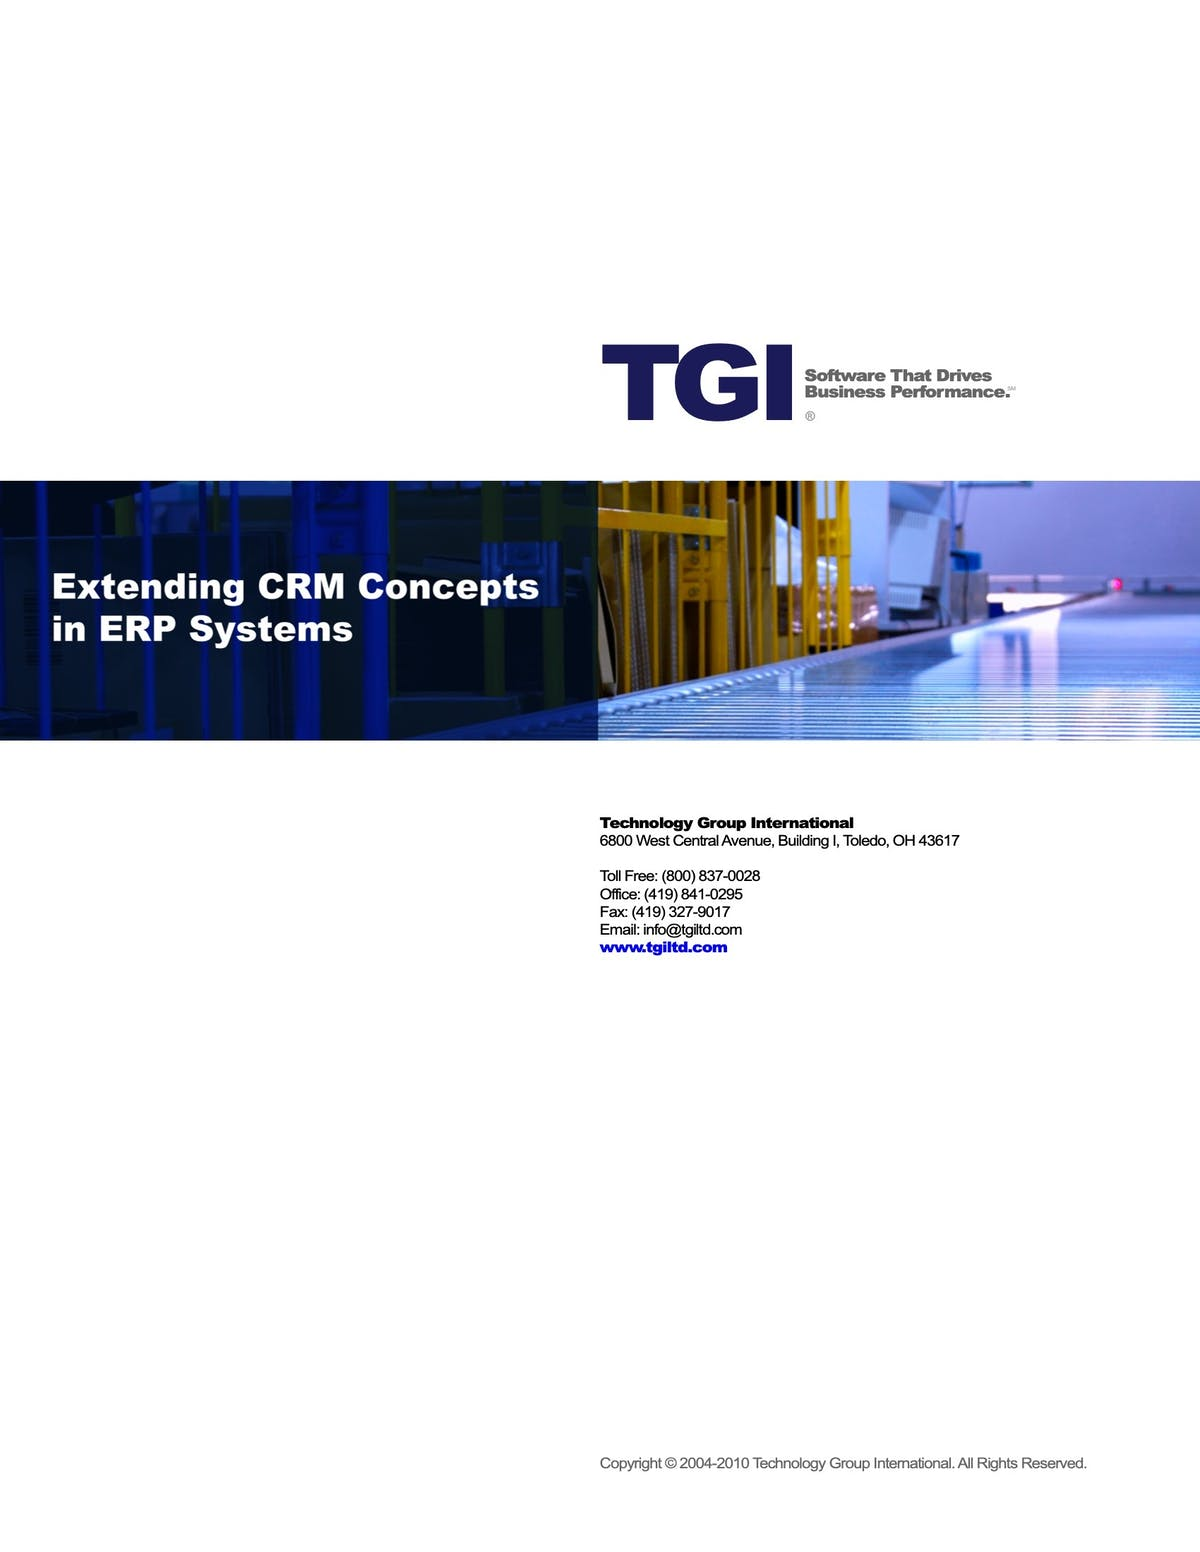 Enterprise 21 ERP White Paper - Extending CRM Concepts in ERP Systems